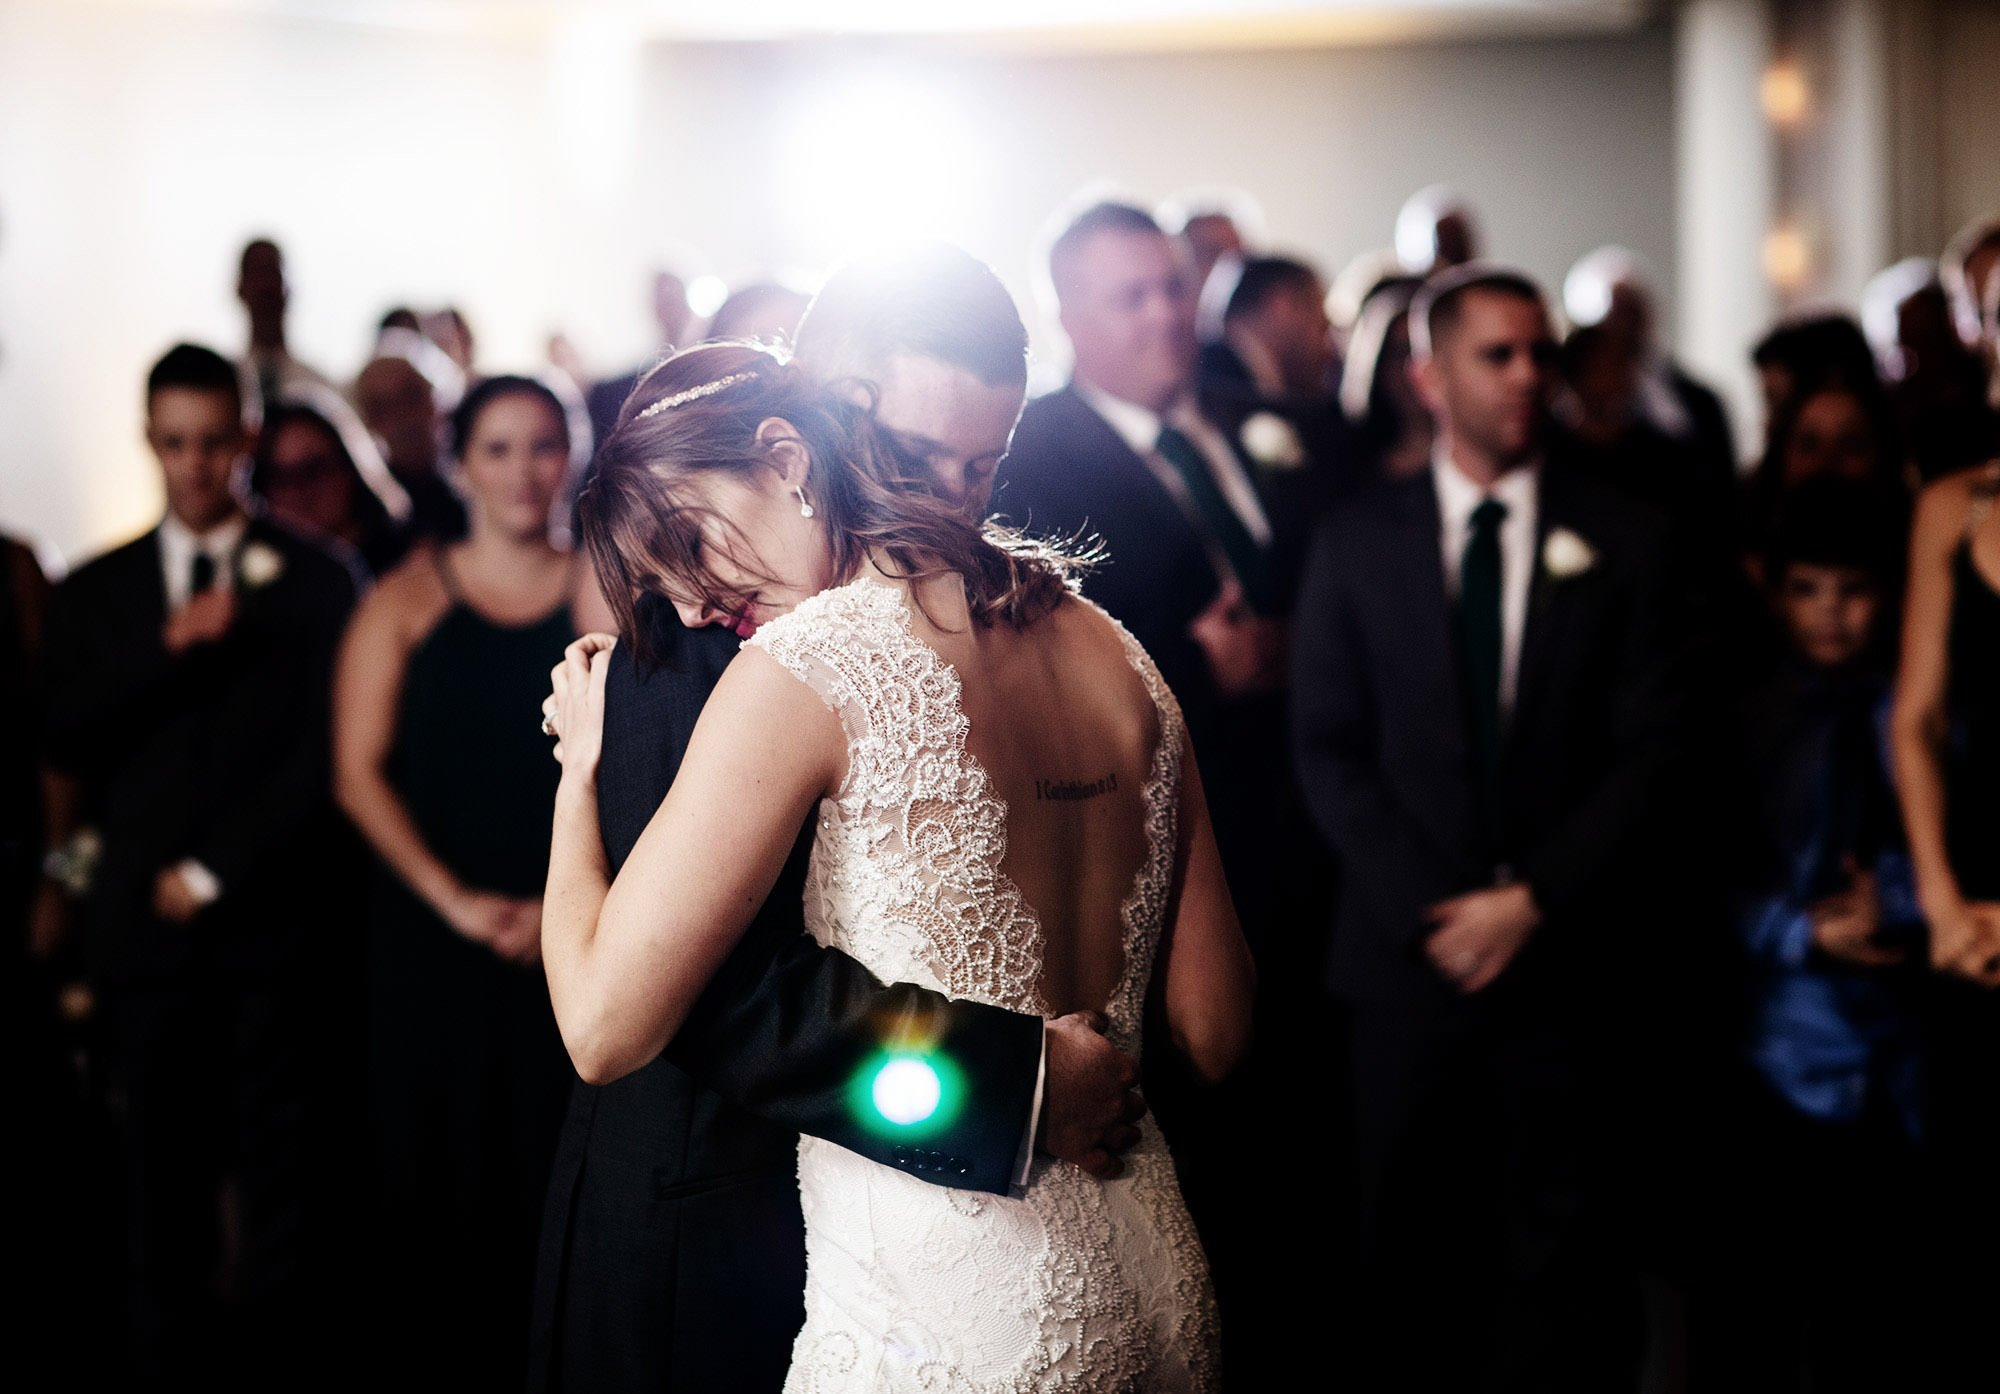 The couple shares their first dance during The Villa at Ridder Country Club Wedding reception in East Bridgewater, MA.